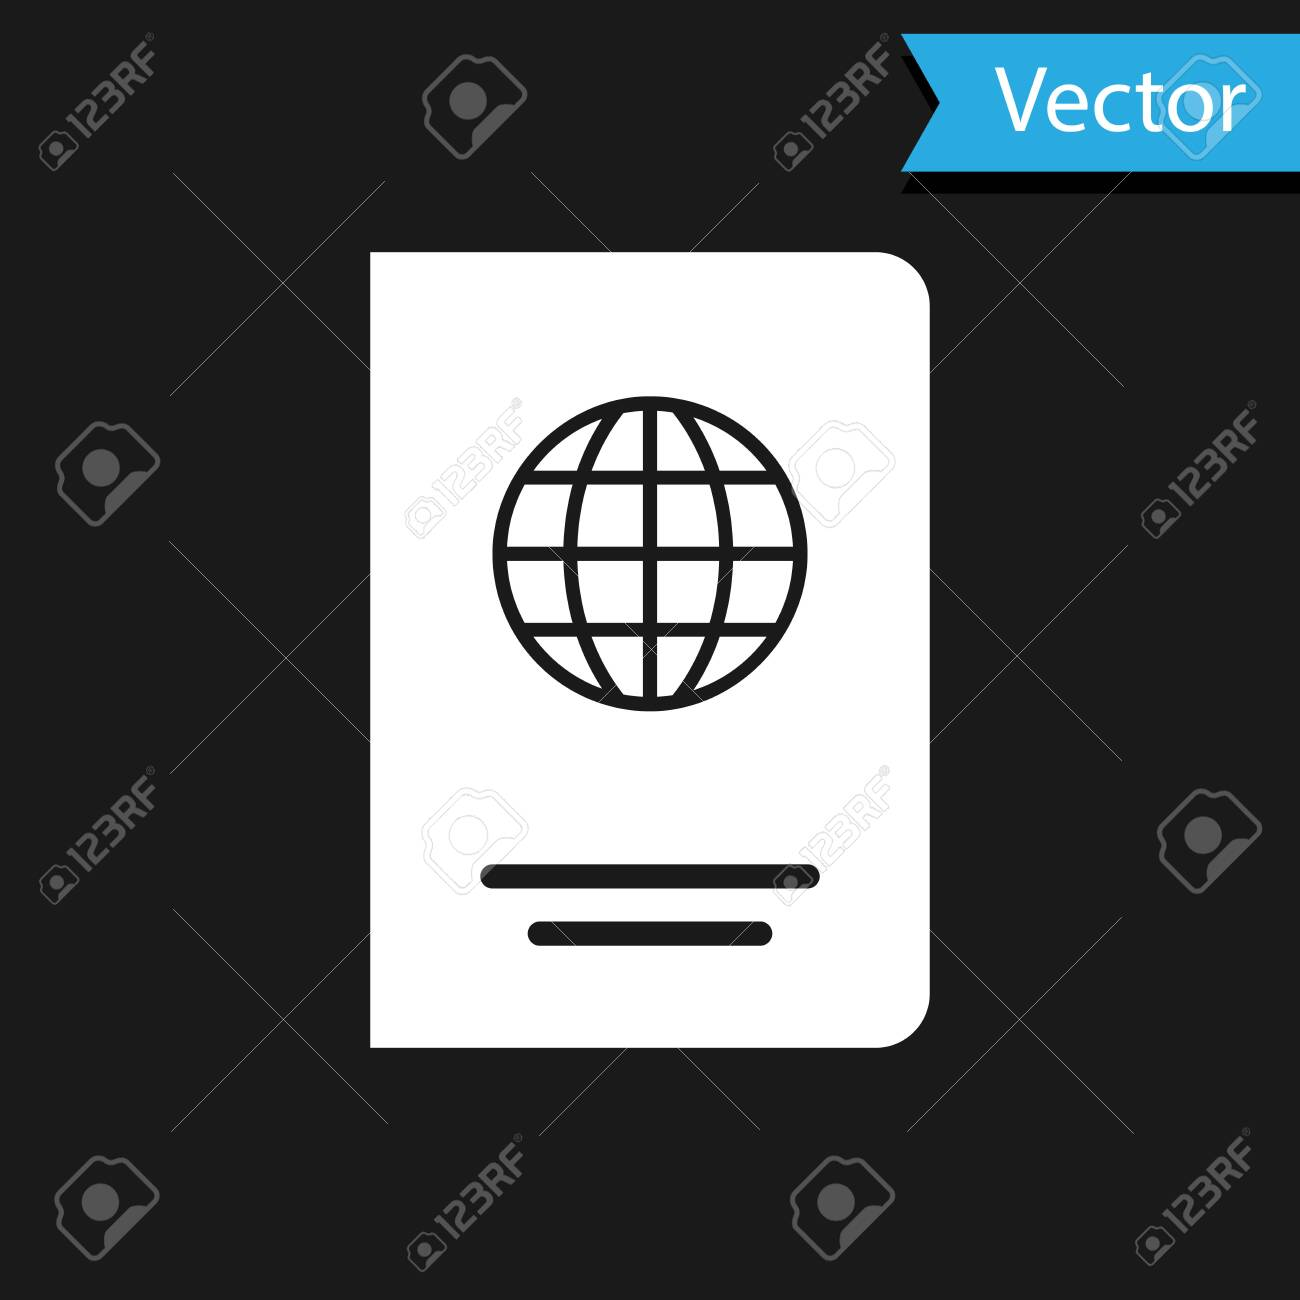 White Passport with biometric data icon isolated on black background